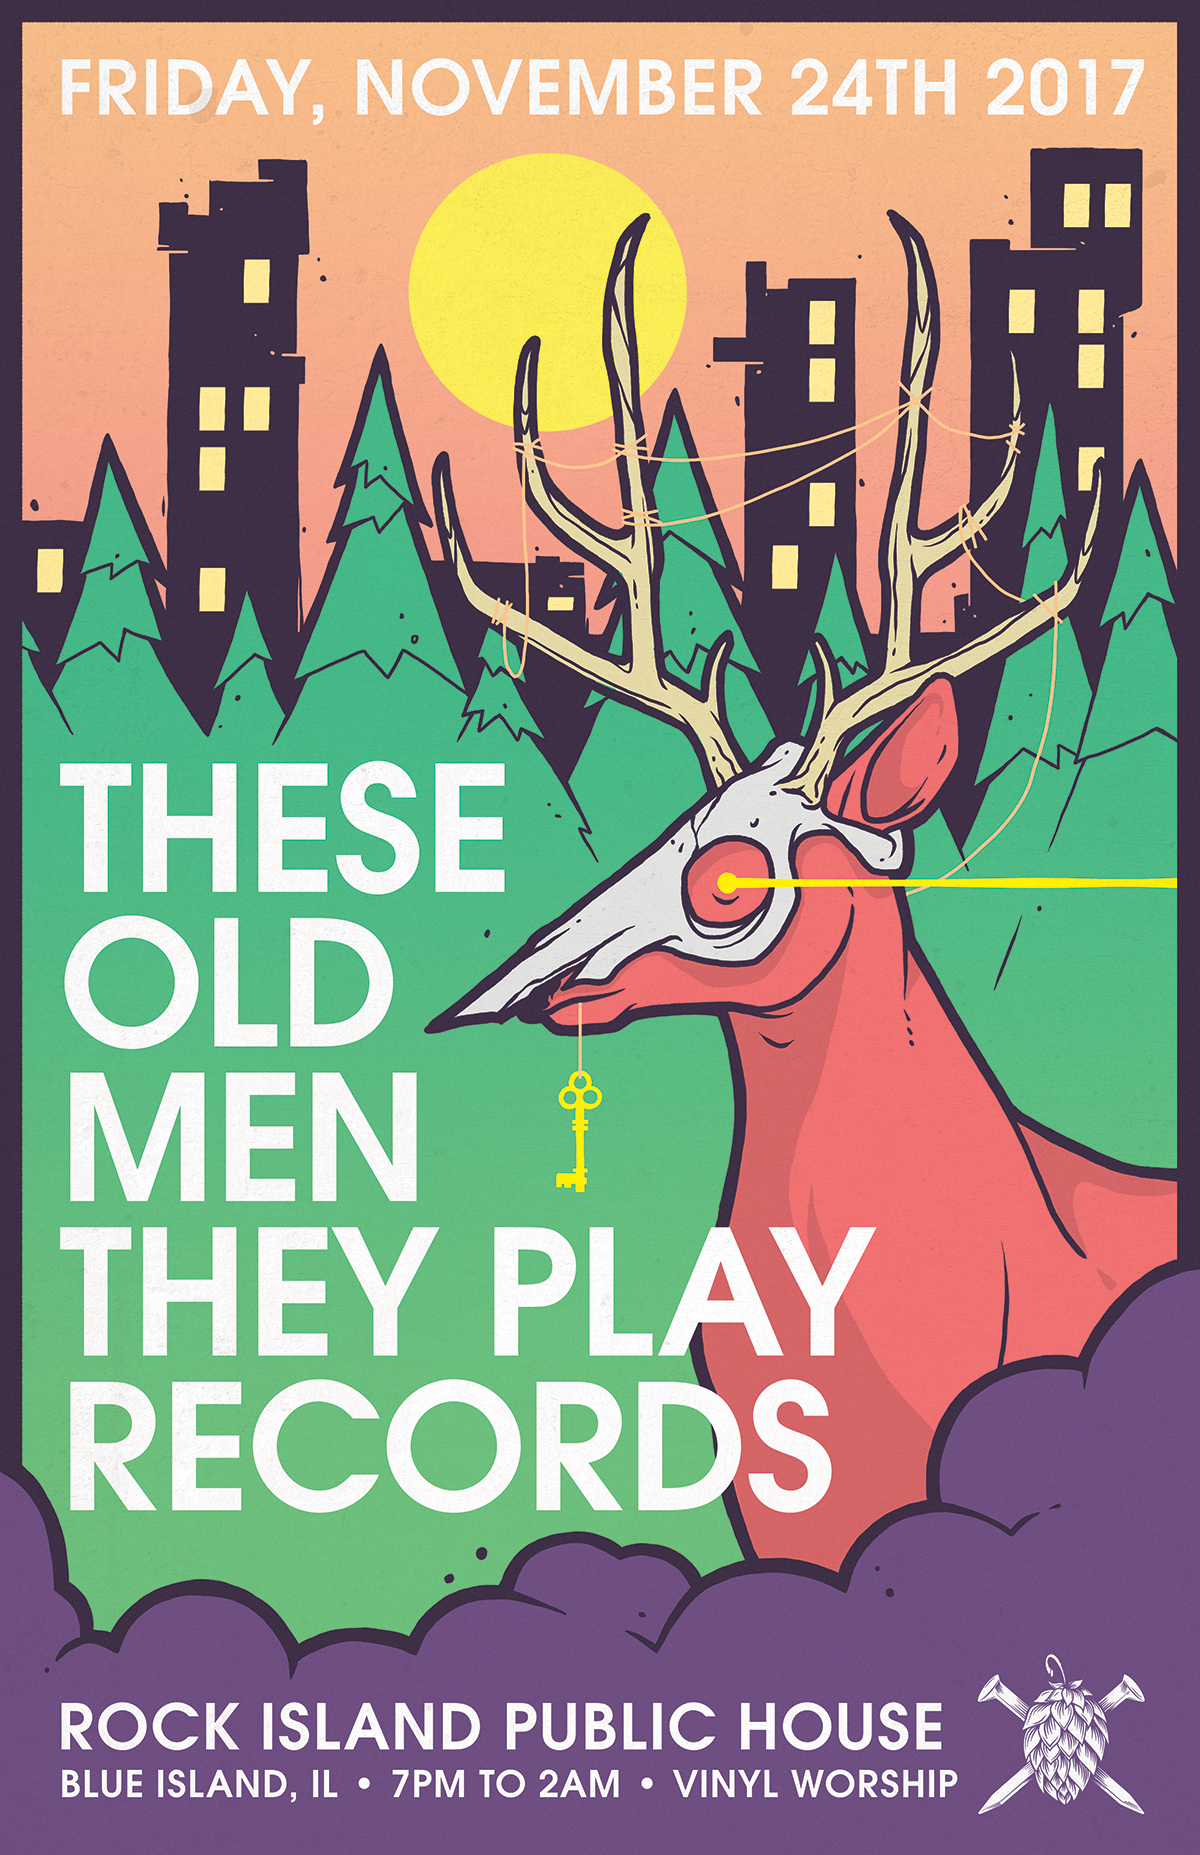 These Old Men They Play Records - the black friday edition